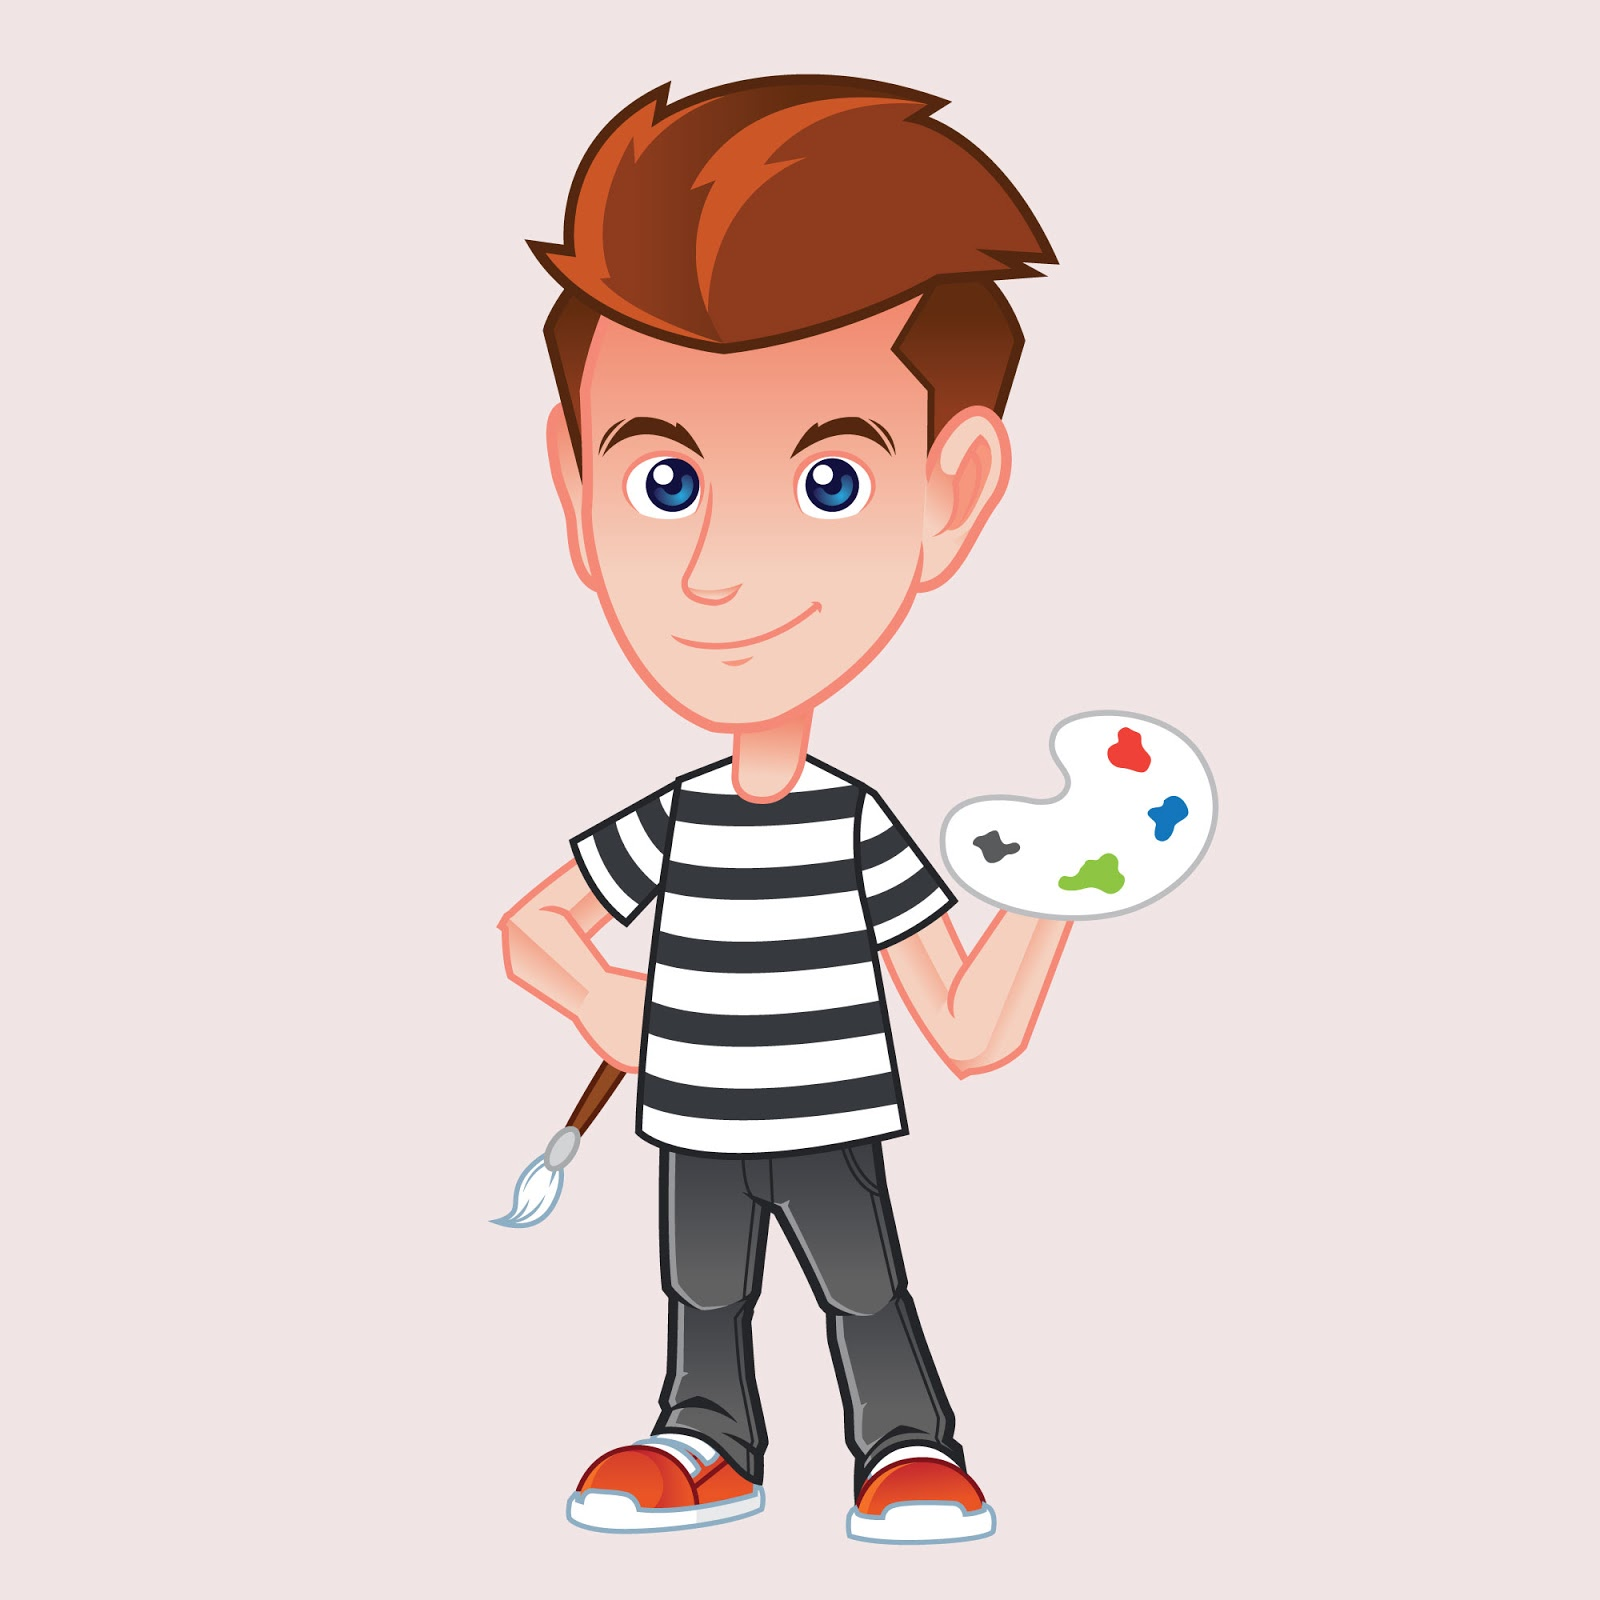 Painter Mascot Illustration Free Download Vector CDR, AI, EPS and PNG Formats